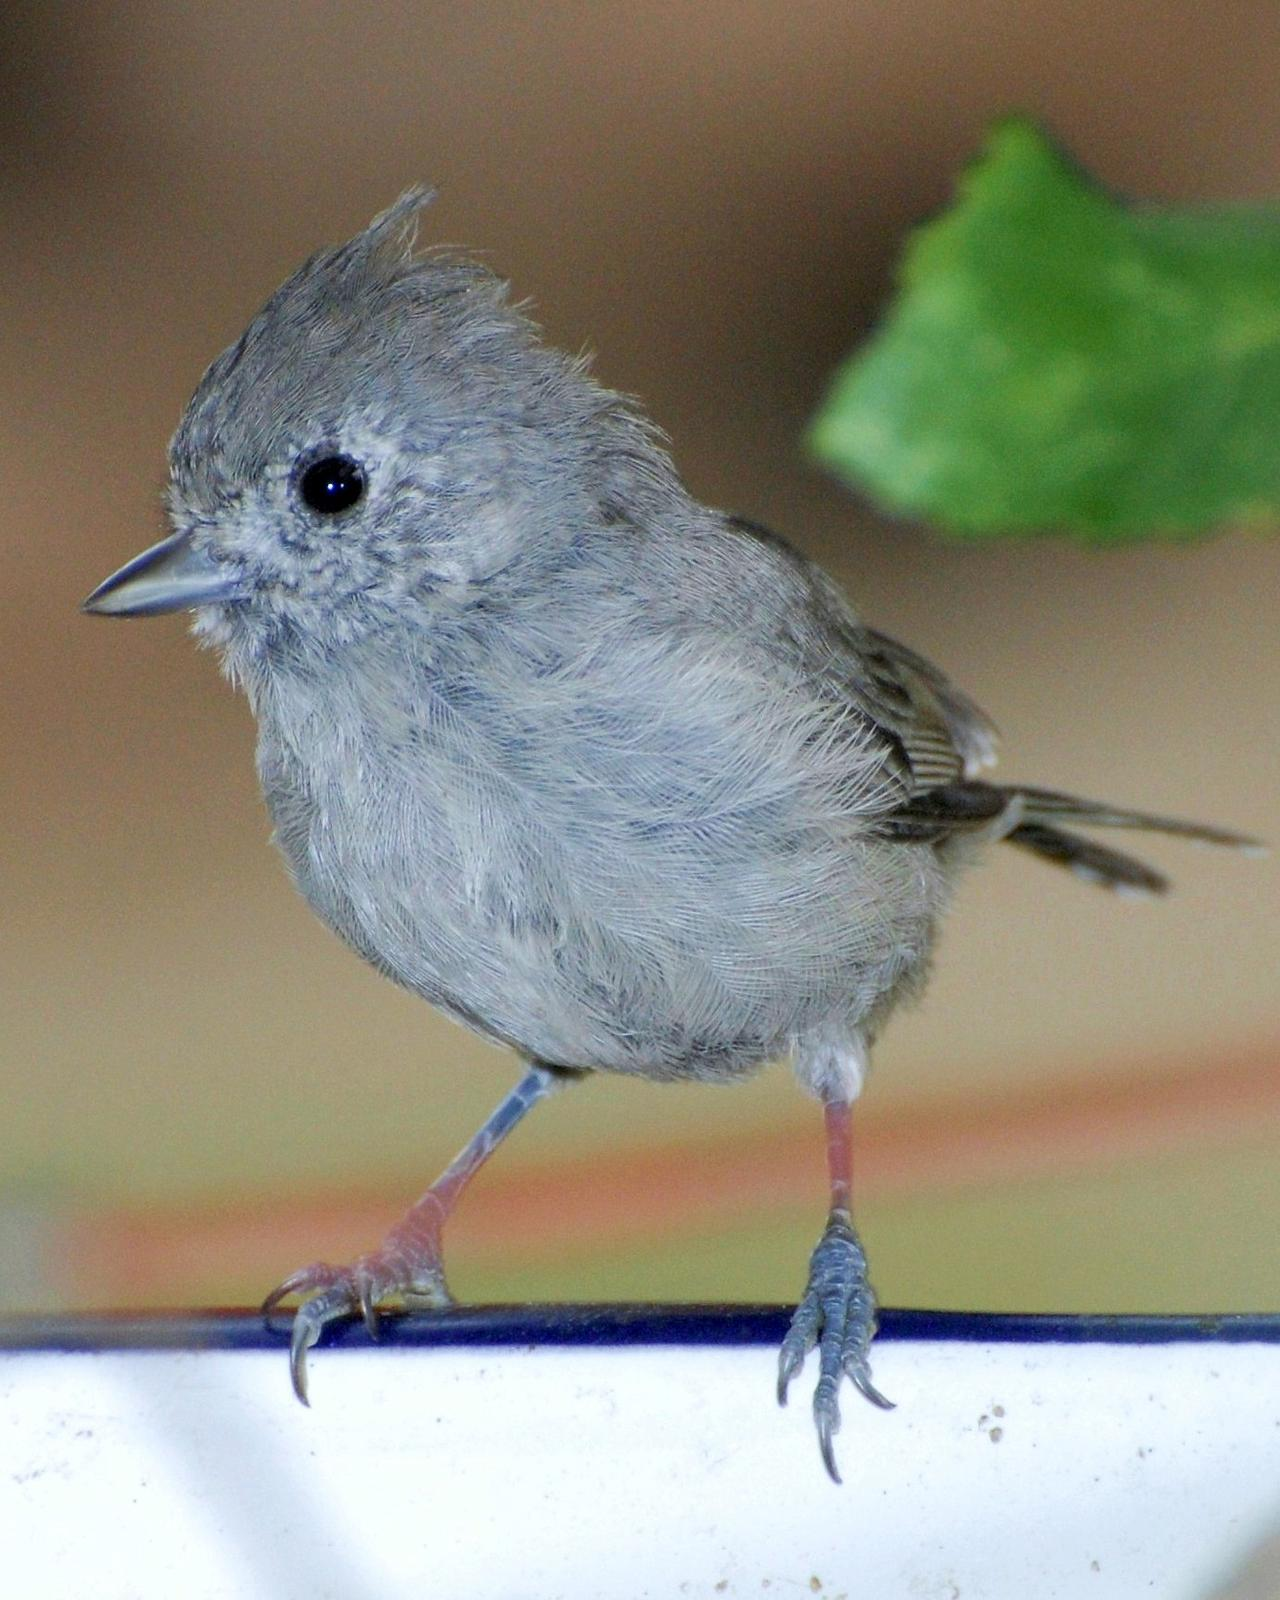 Juniper Titmouse Photo by David Hollie